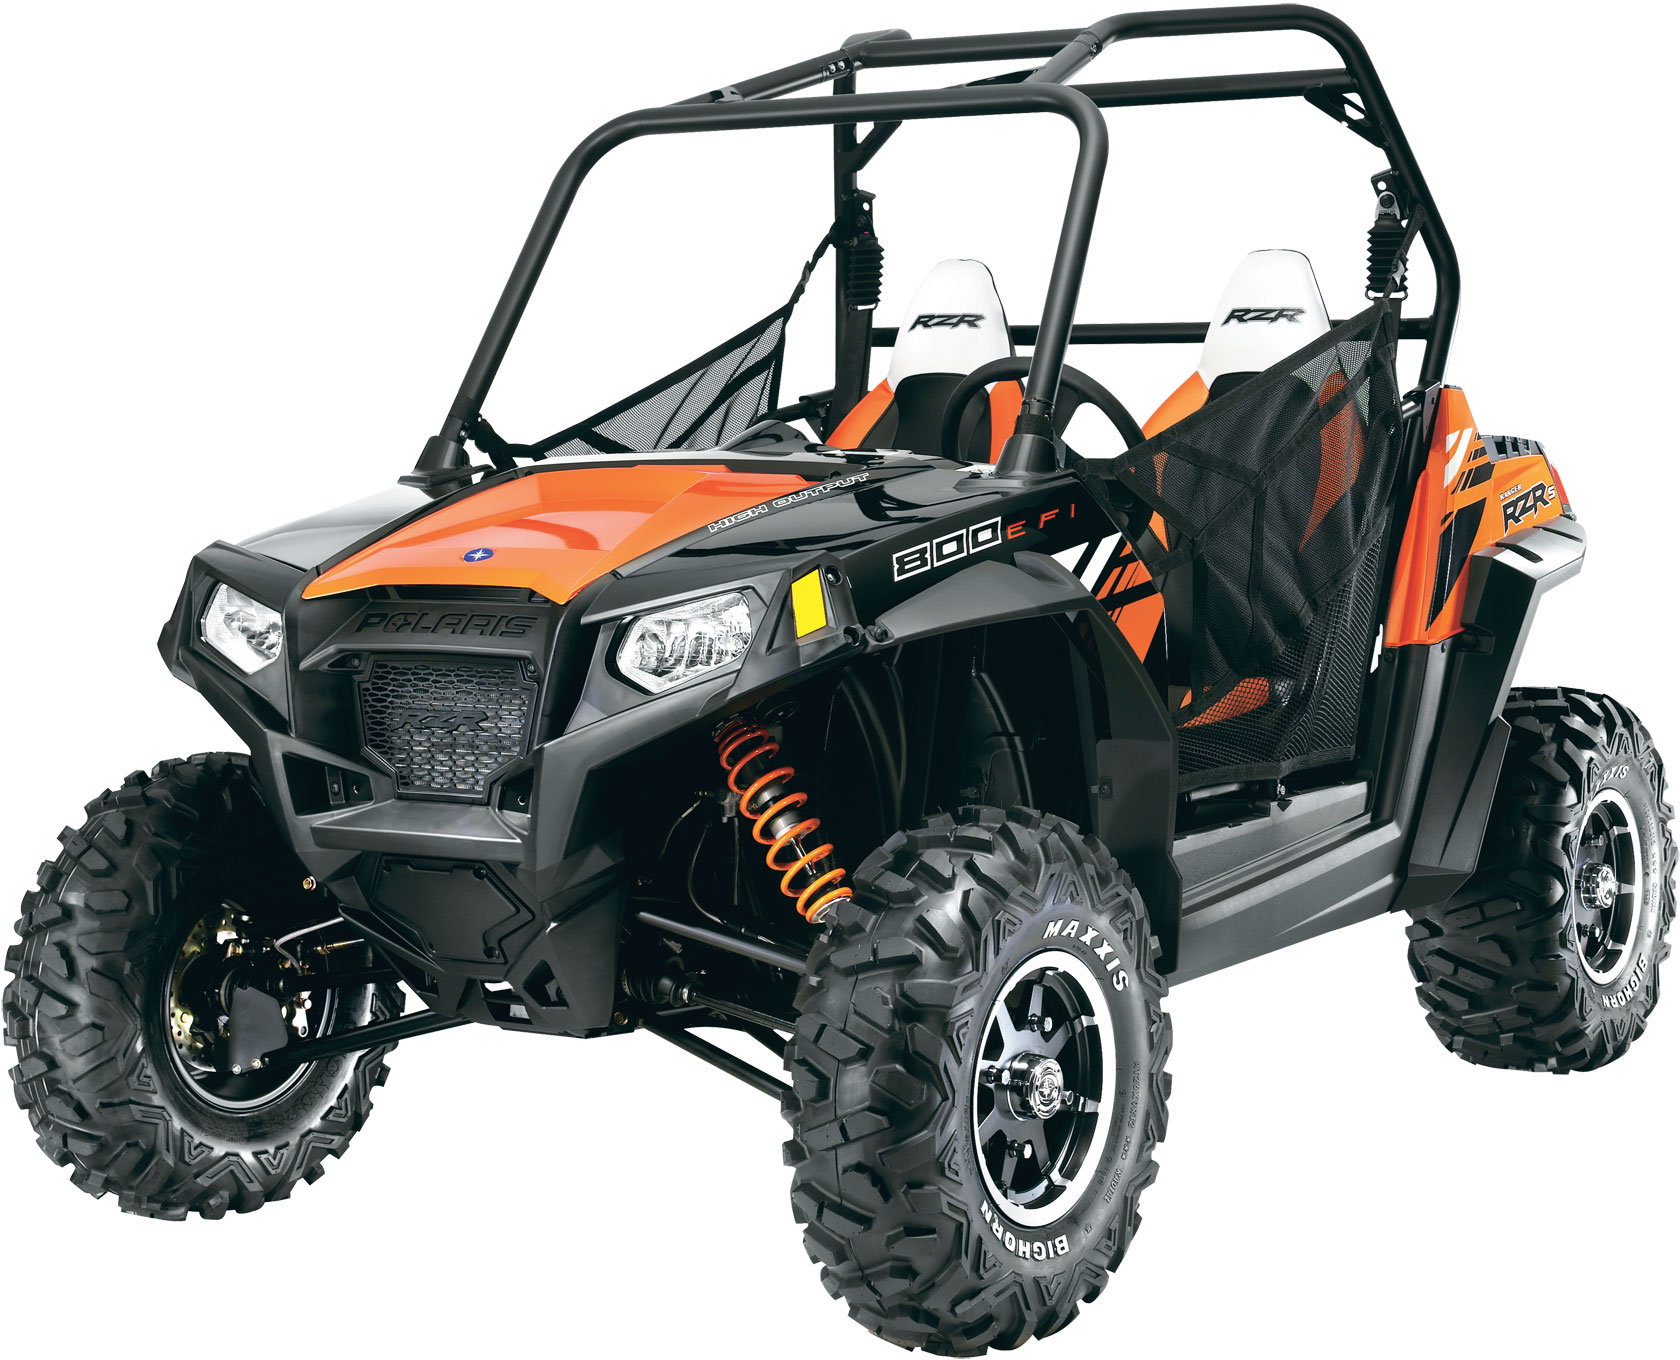 polaris rzr s 800 le specs 2010 2011 autoevolution. Black Bedroom Furniture Sets. Home Design Ideas